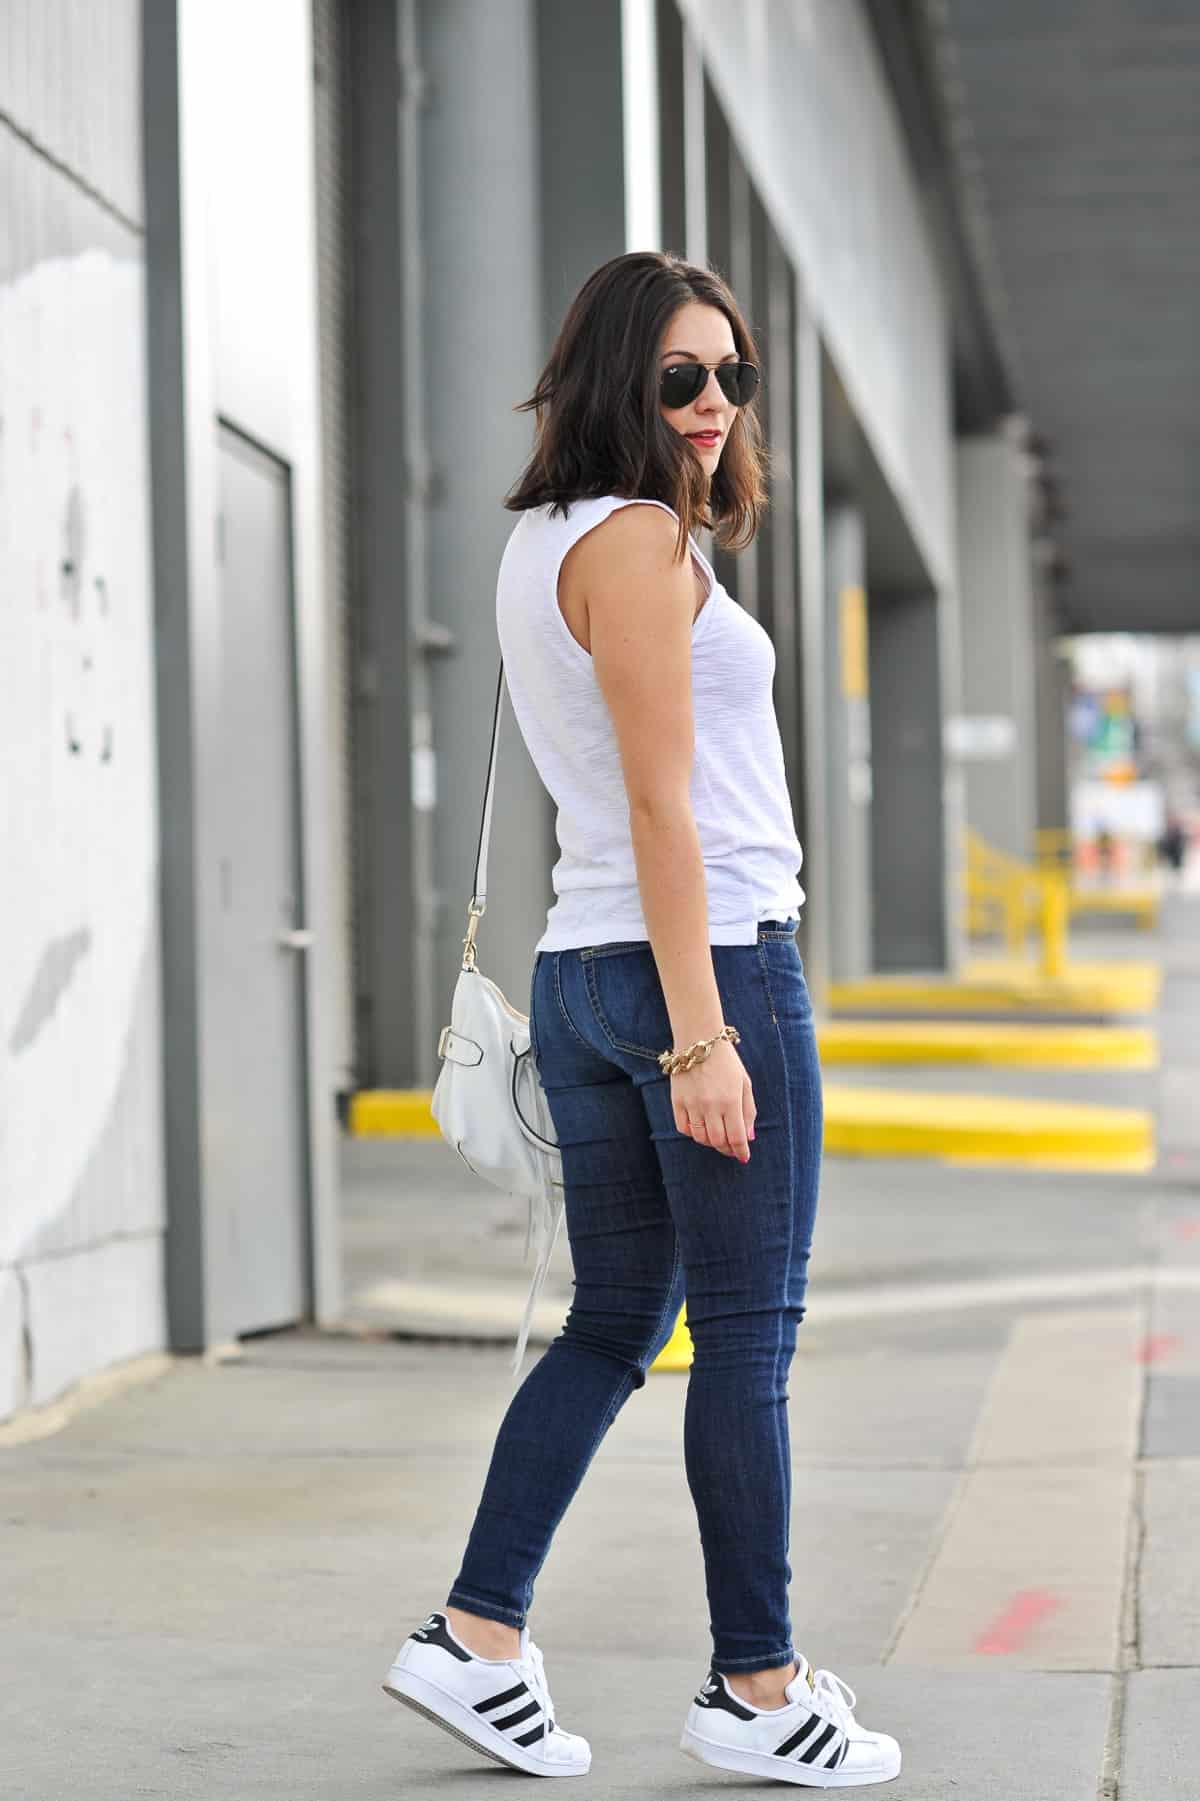 jessica camerata wear adidas with jeans